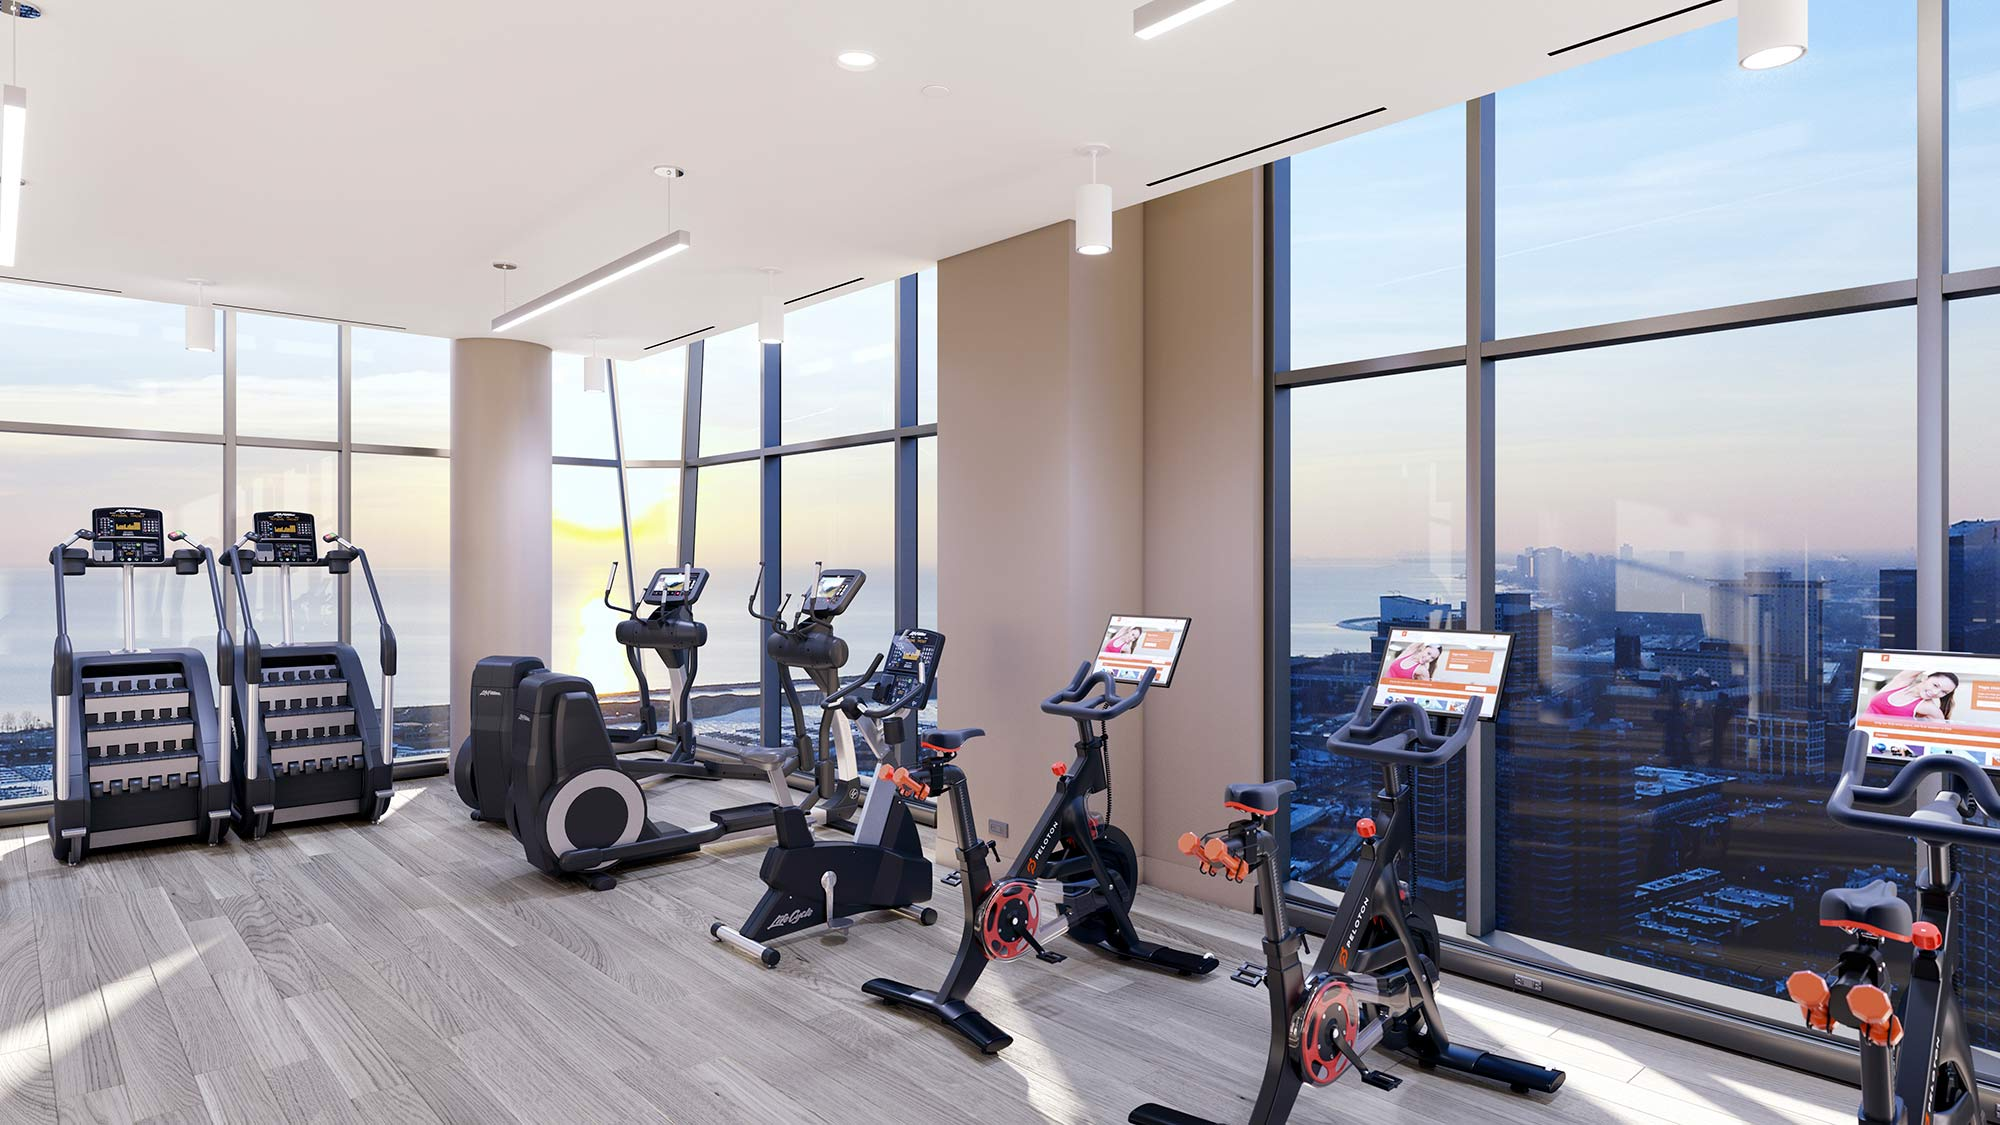 Fitness room at the Paragon